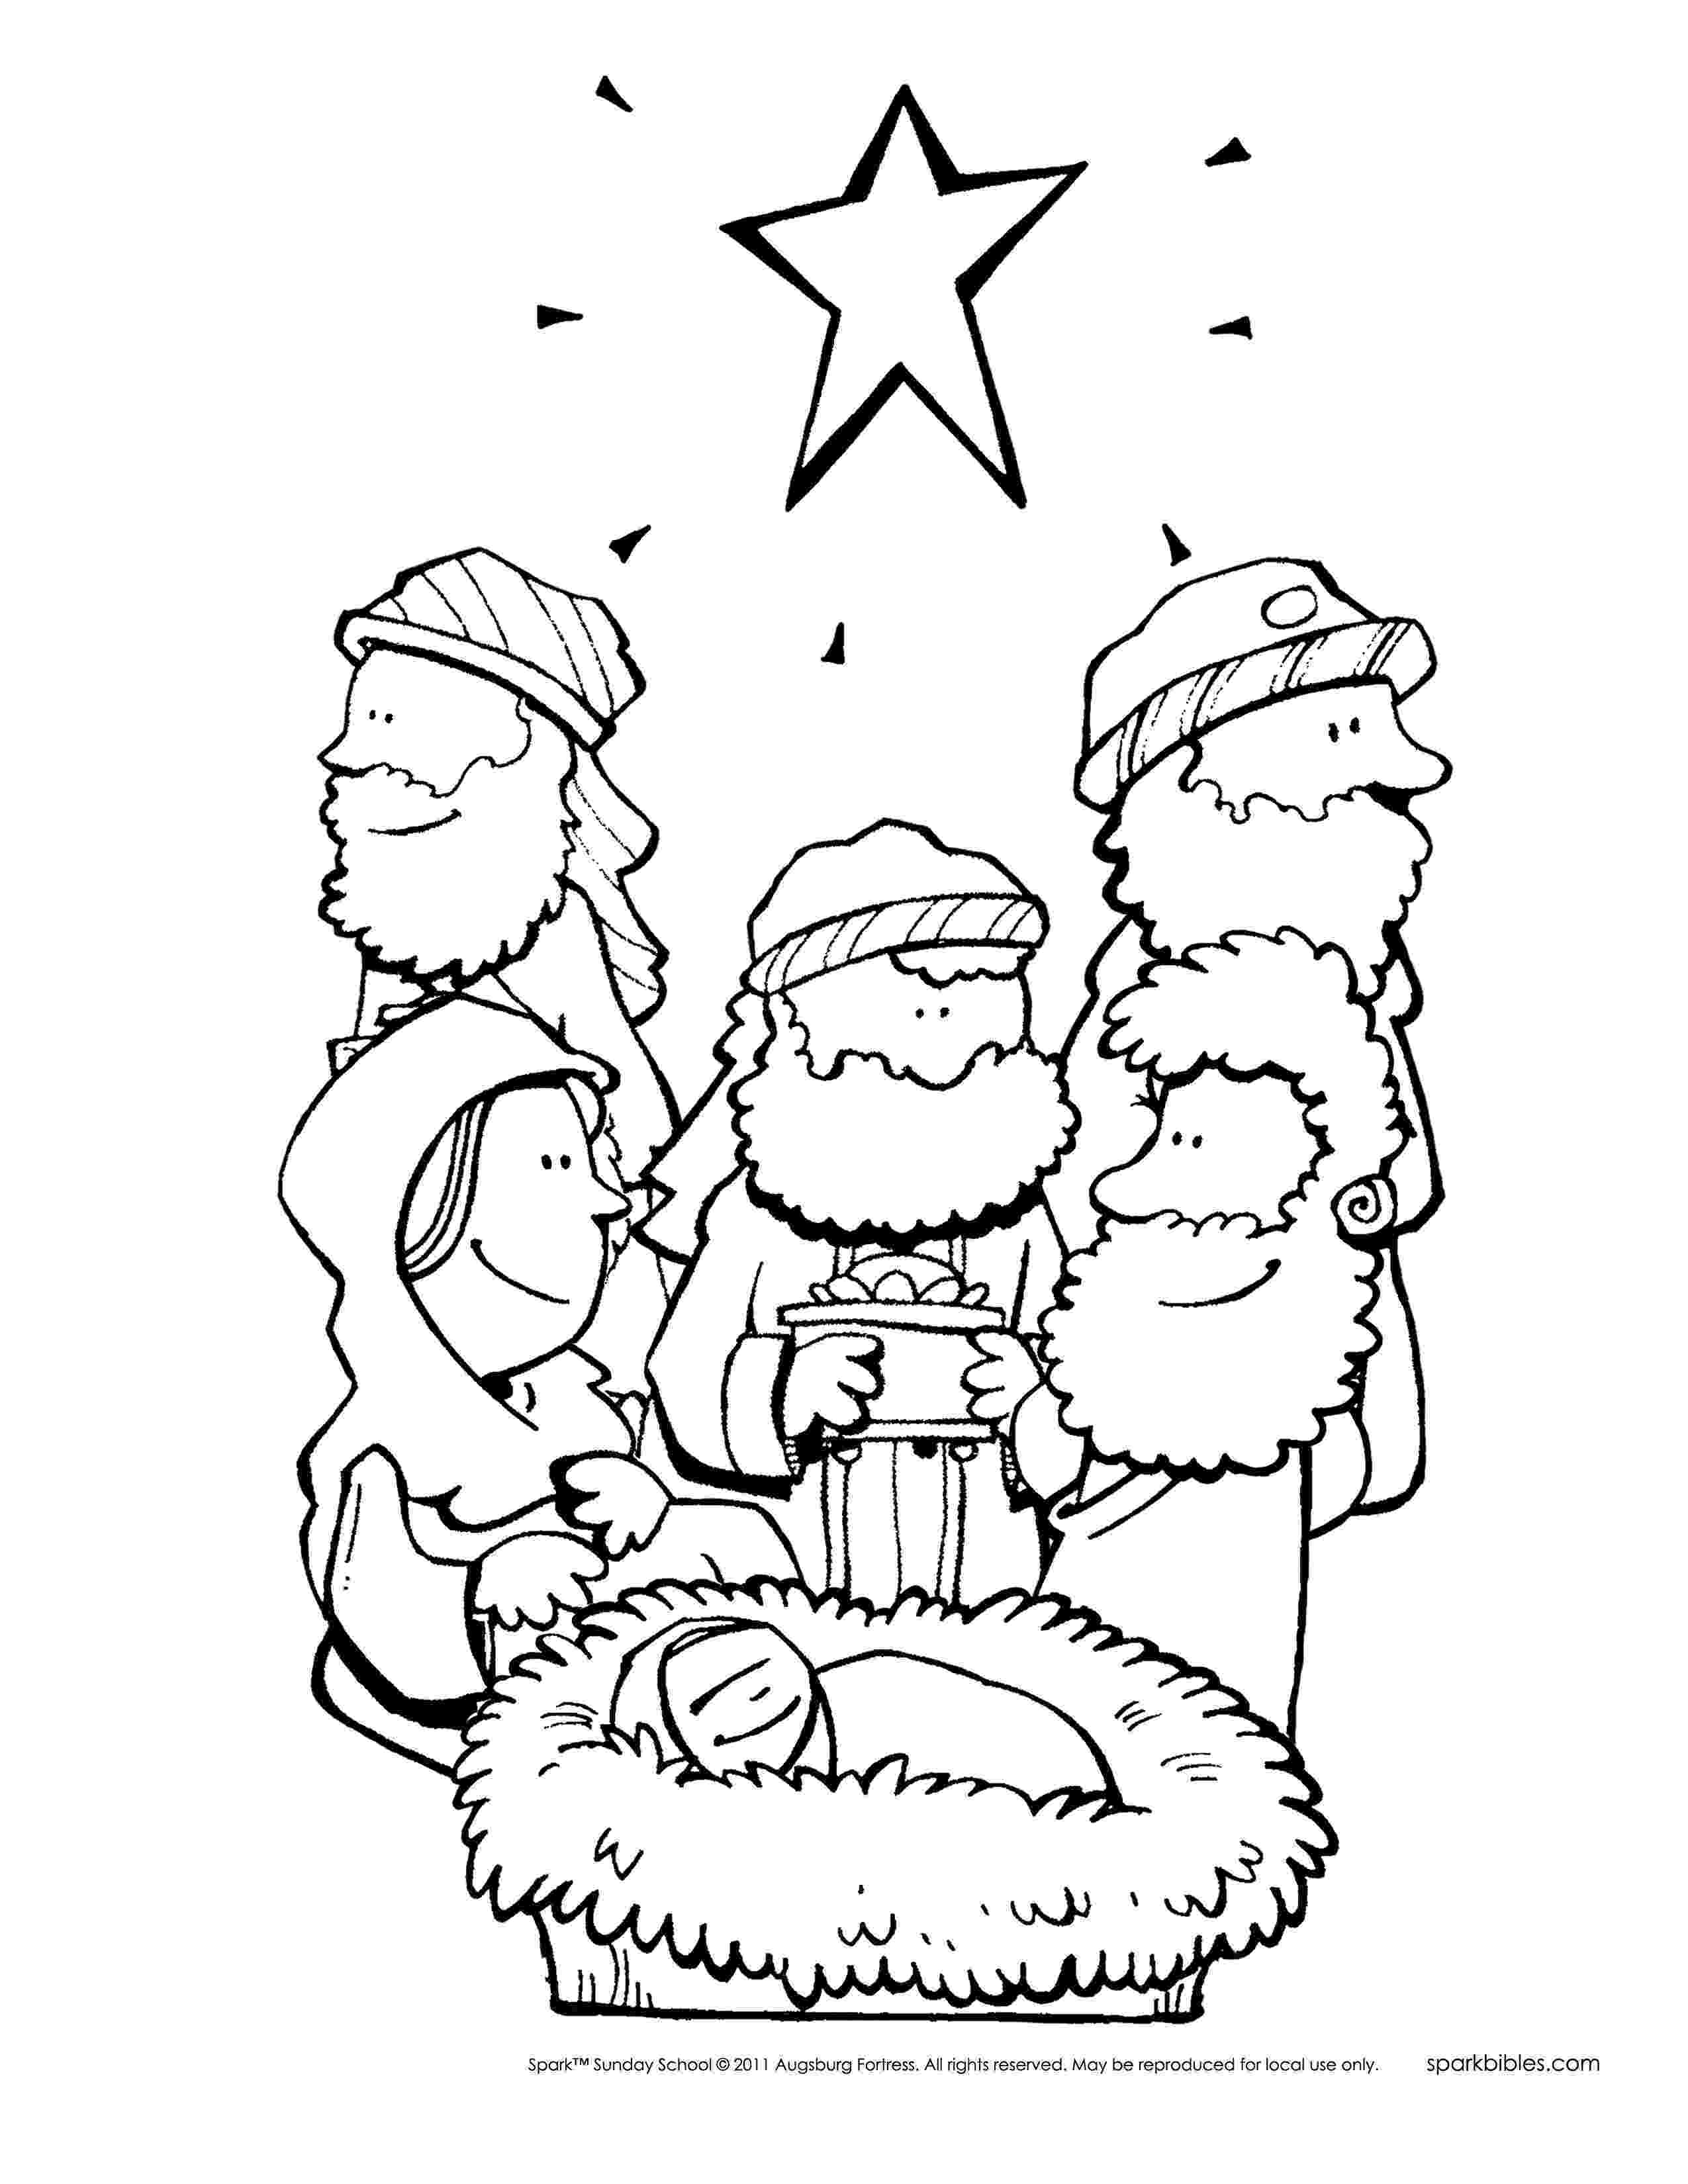 bible coloring pages for 2 year olds doodle art pray nice coloring page for older kids 2 olds year bible coloring for pages